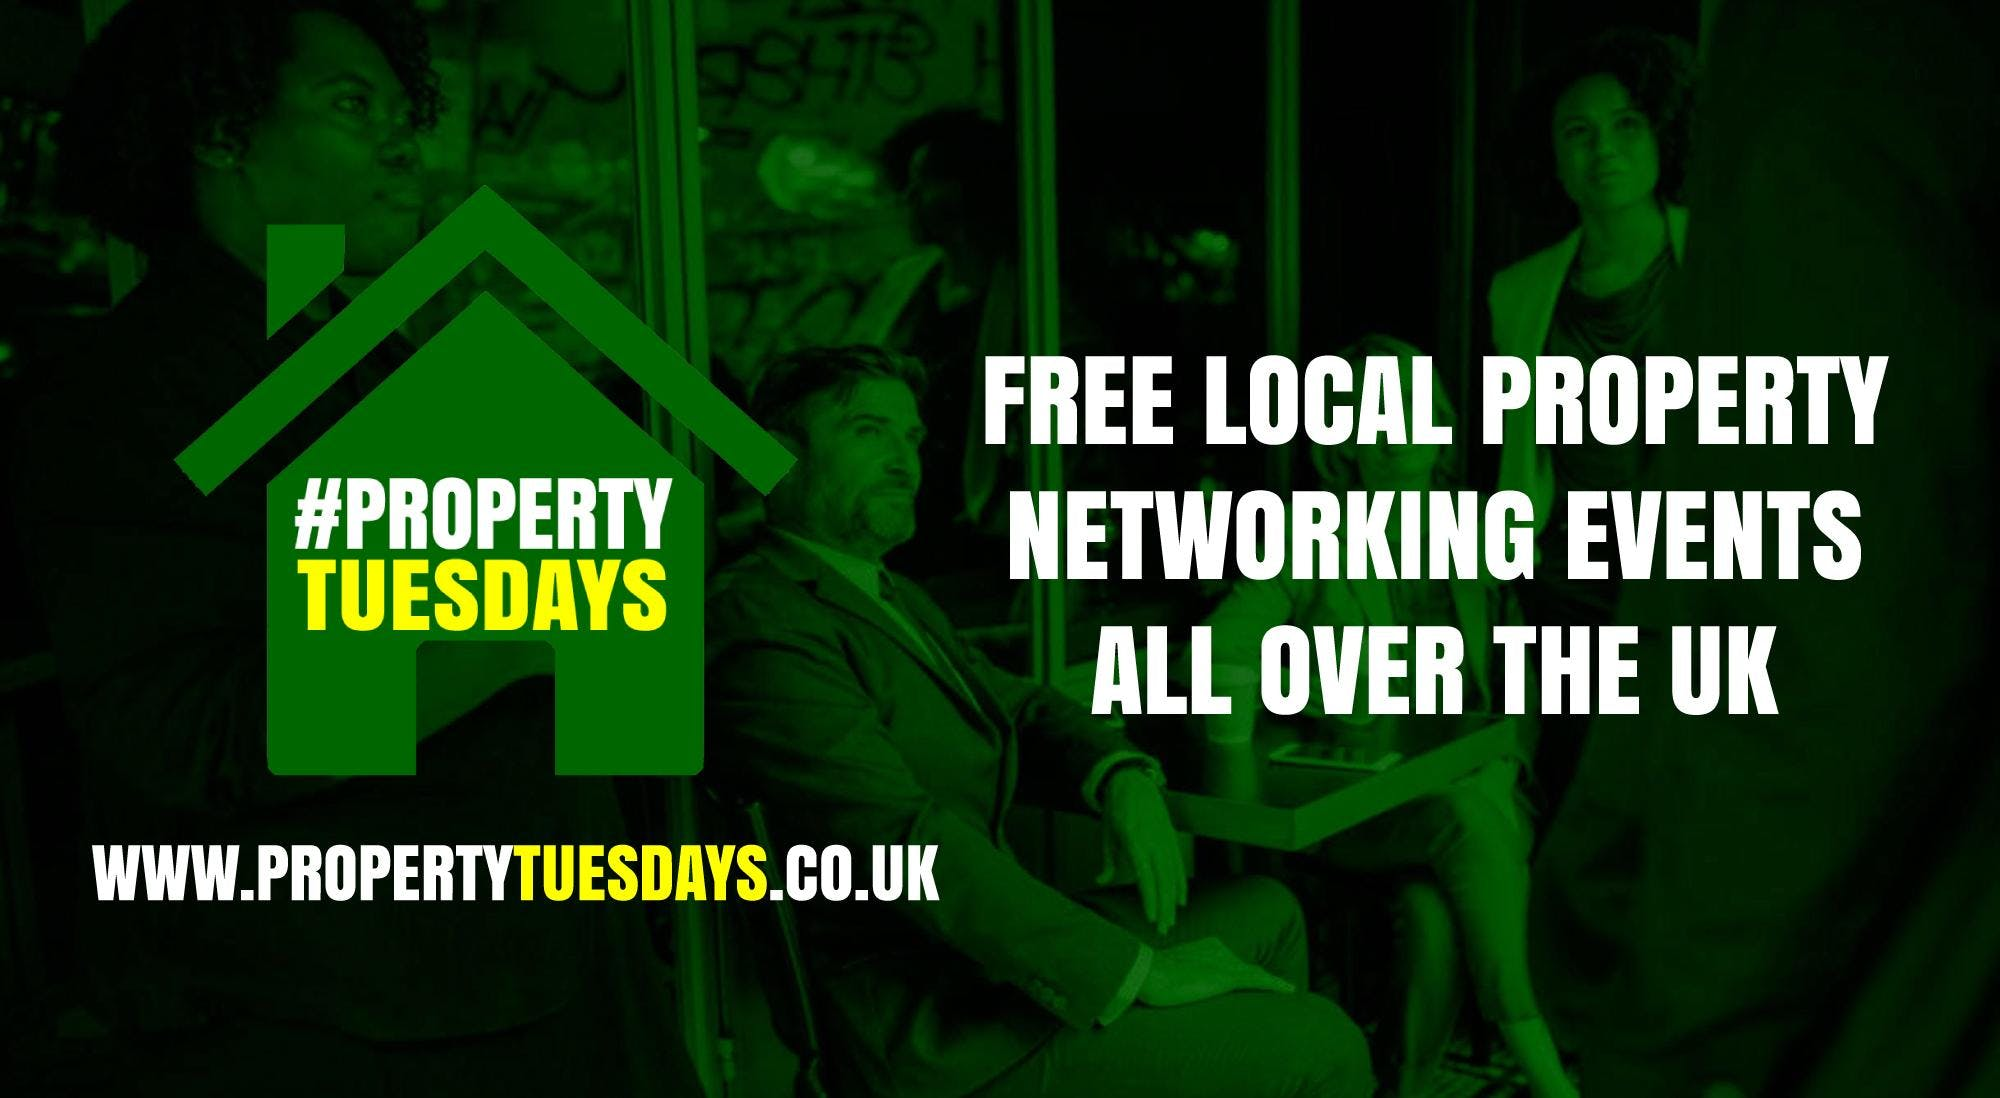 Property Tuesdays! Free property networking event in Newcastle upon Tyne